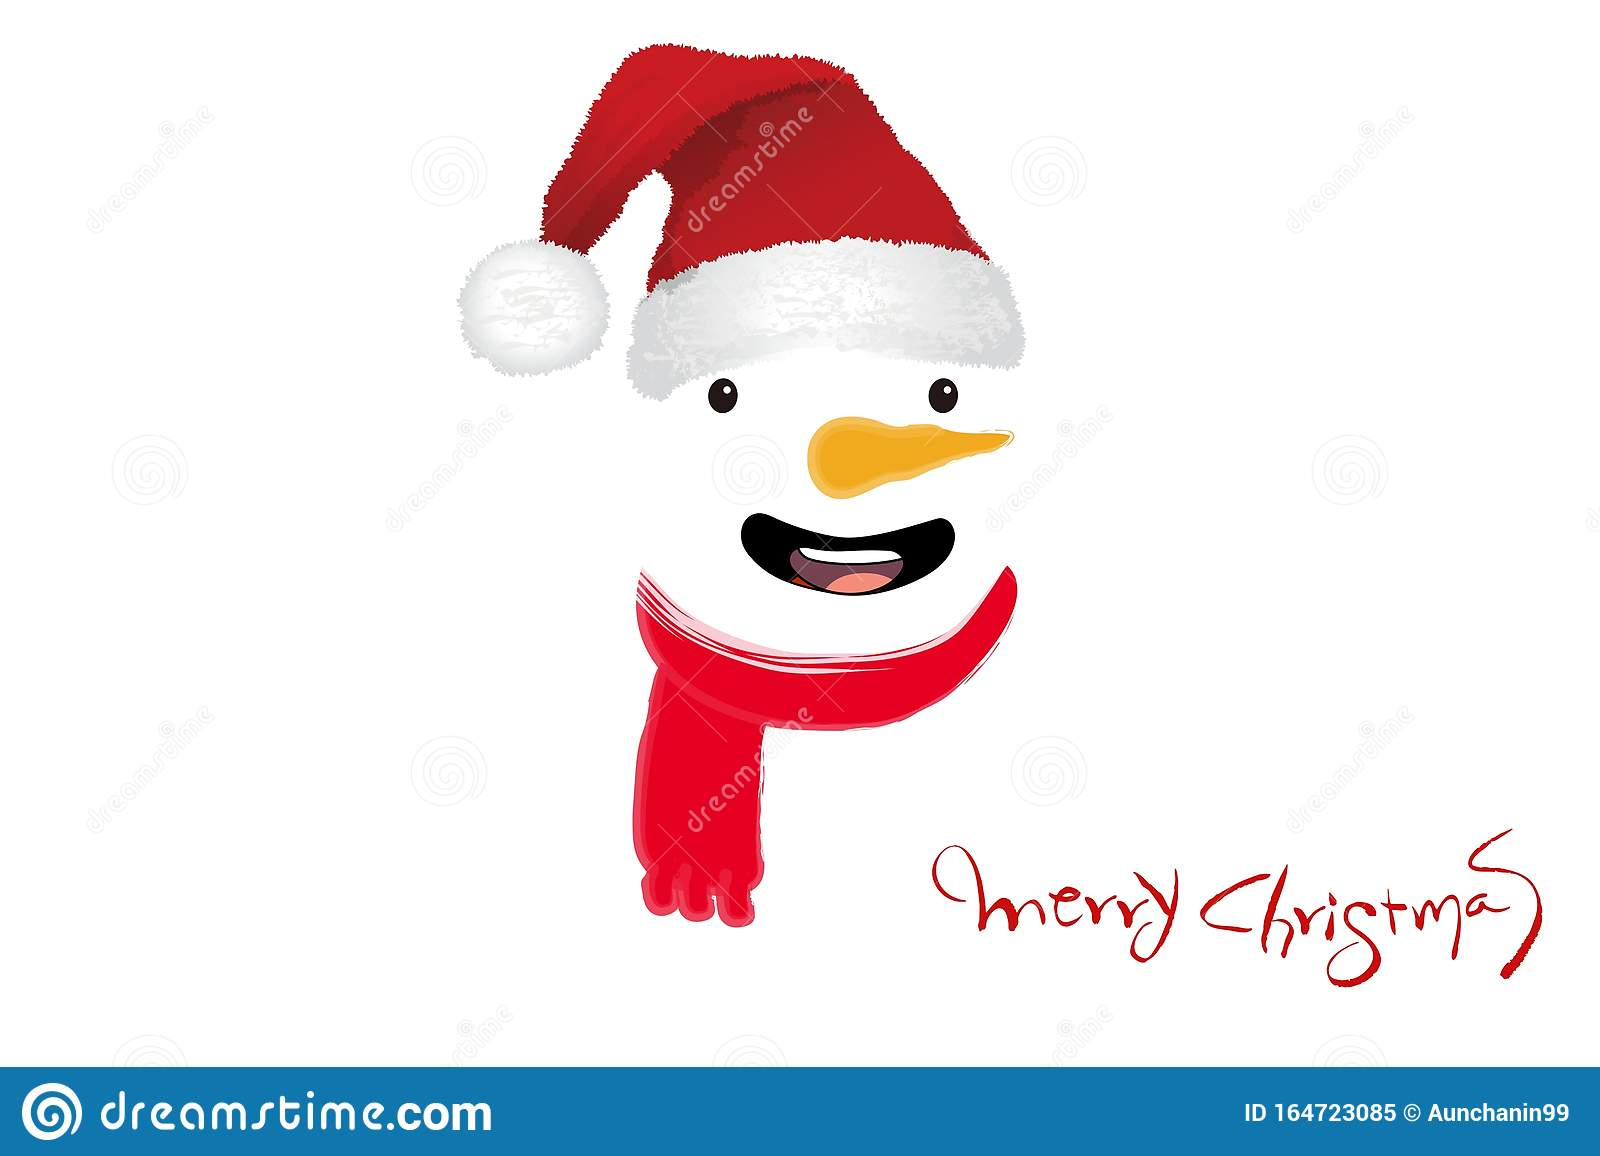 Merry Christmas card with snowman on white background .